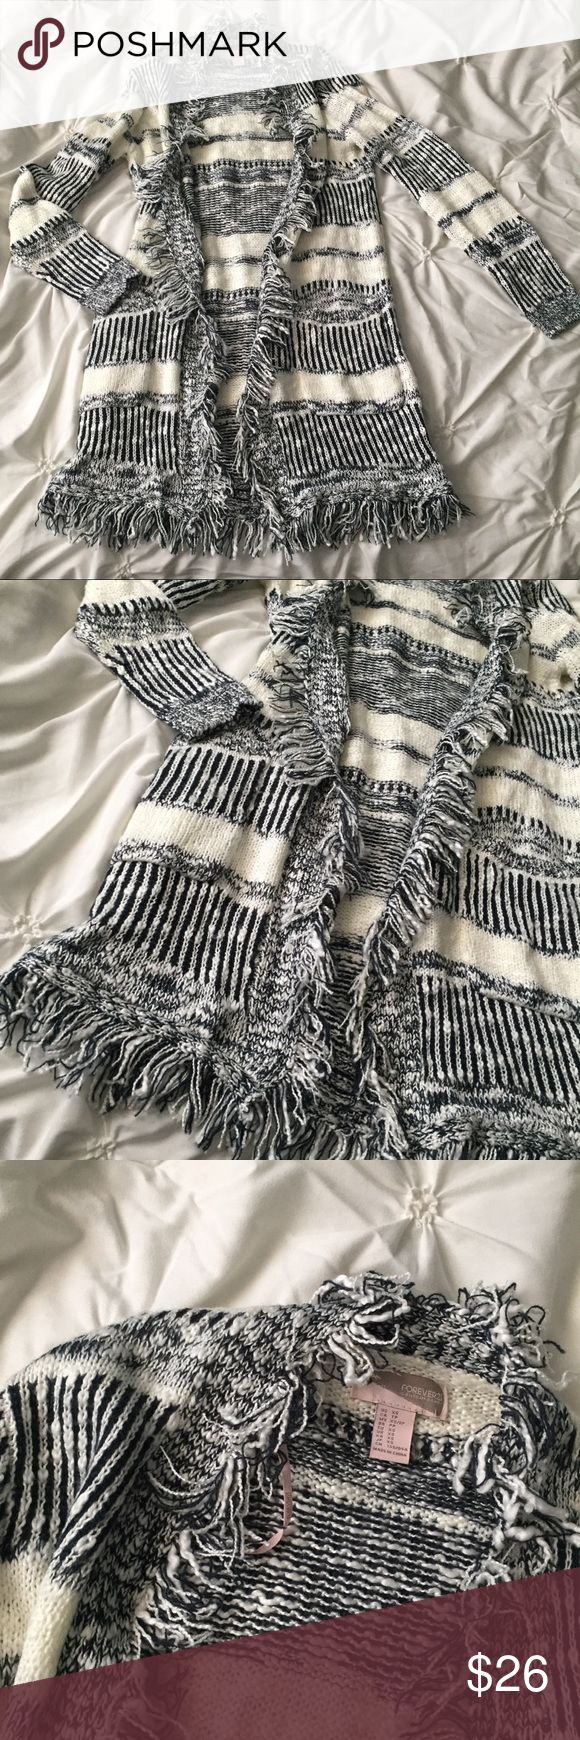 Forever 21 Black & White Striped Fringe  Sweater Forever 21 Black & White Striped Fringe Long Cardigan Sweater size XS ---- 🚭 All items are from a non-smoking home. 👆🏻Item is as described, feel free to ask questions. 📦 I am a fast shipper with excellent ratings. 👗I love bundles & bundle discounts. Feel free to make an offer! 😍 Like this item? Check out the rest of my closet! 💖 Thanks for looking! Forever 21 Sweaters Cardigans